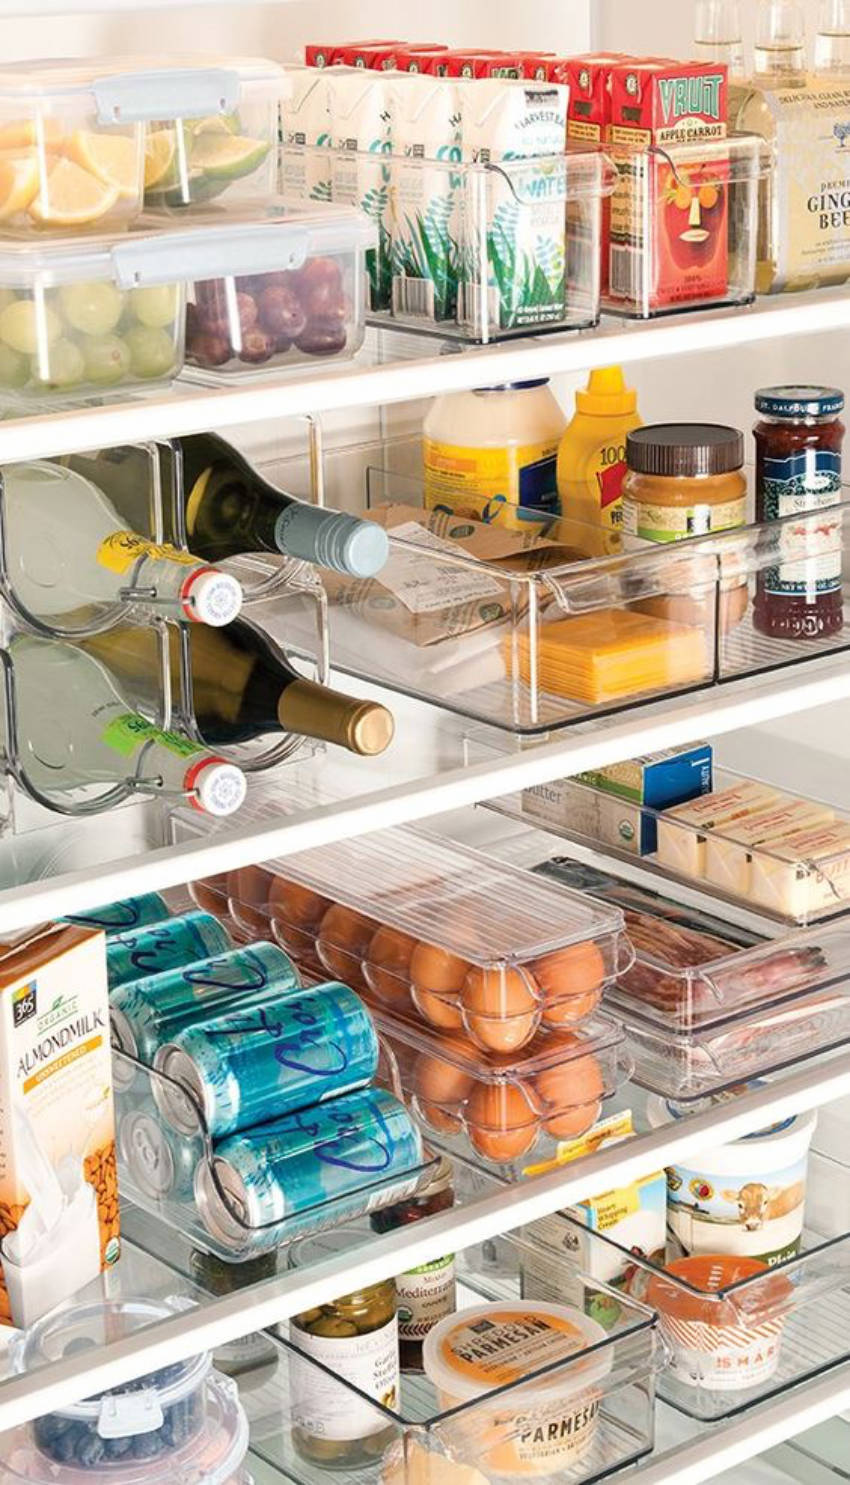 Clear bins make it easy to spot and organize everything in your fridge.